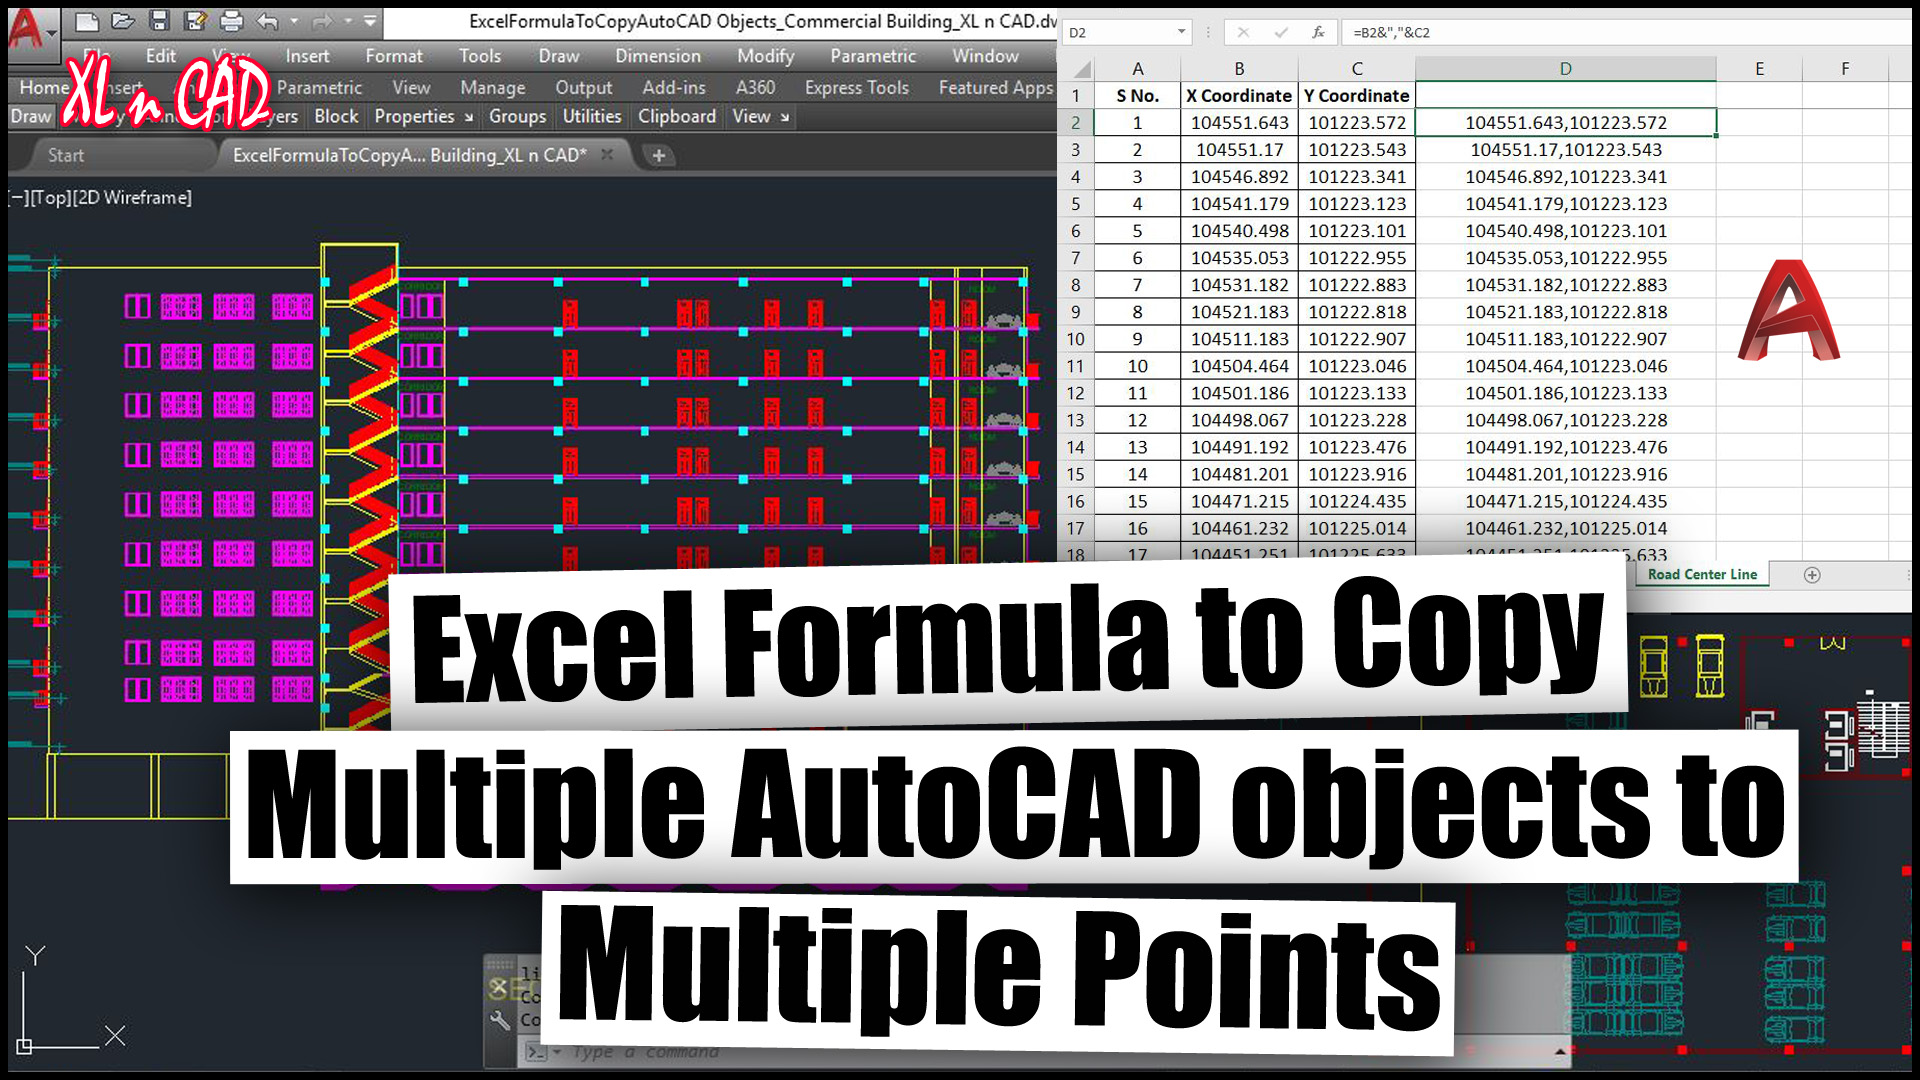 Excel formula to copy AutoCAD objects to multiple points